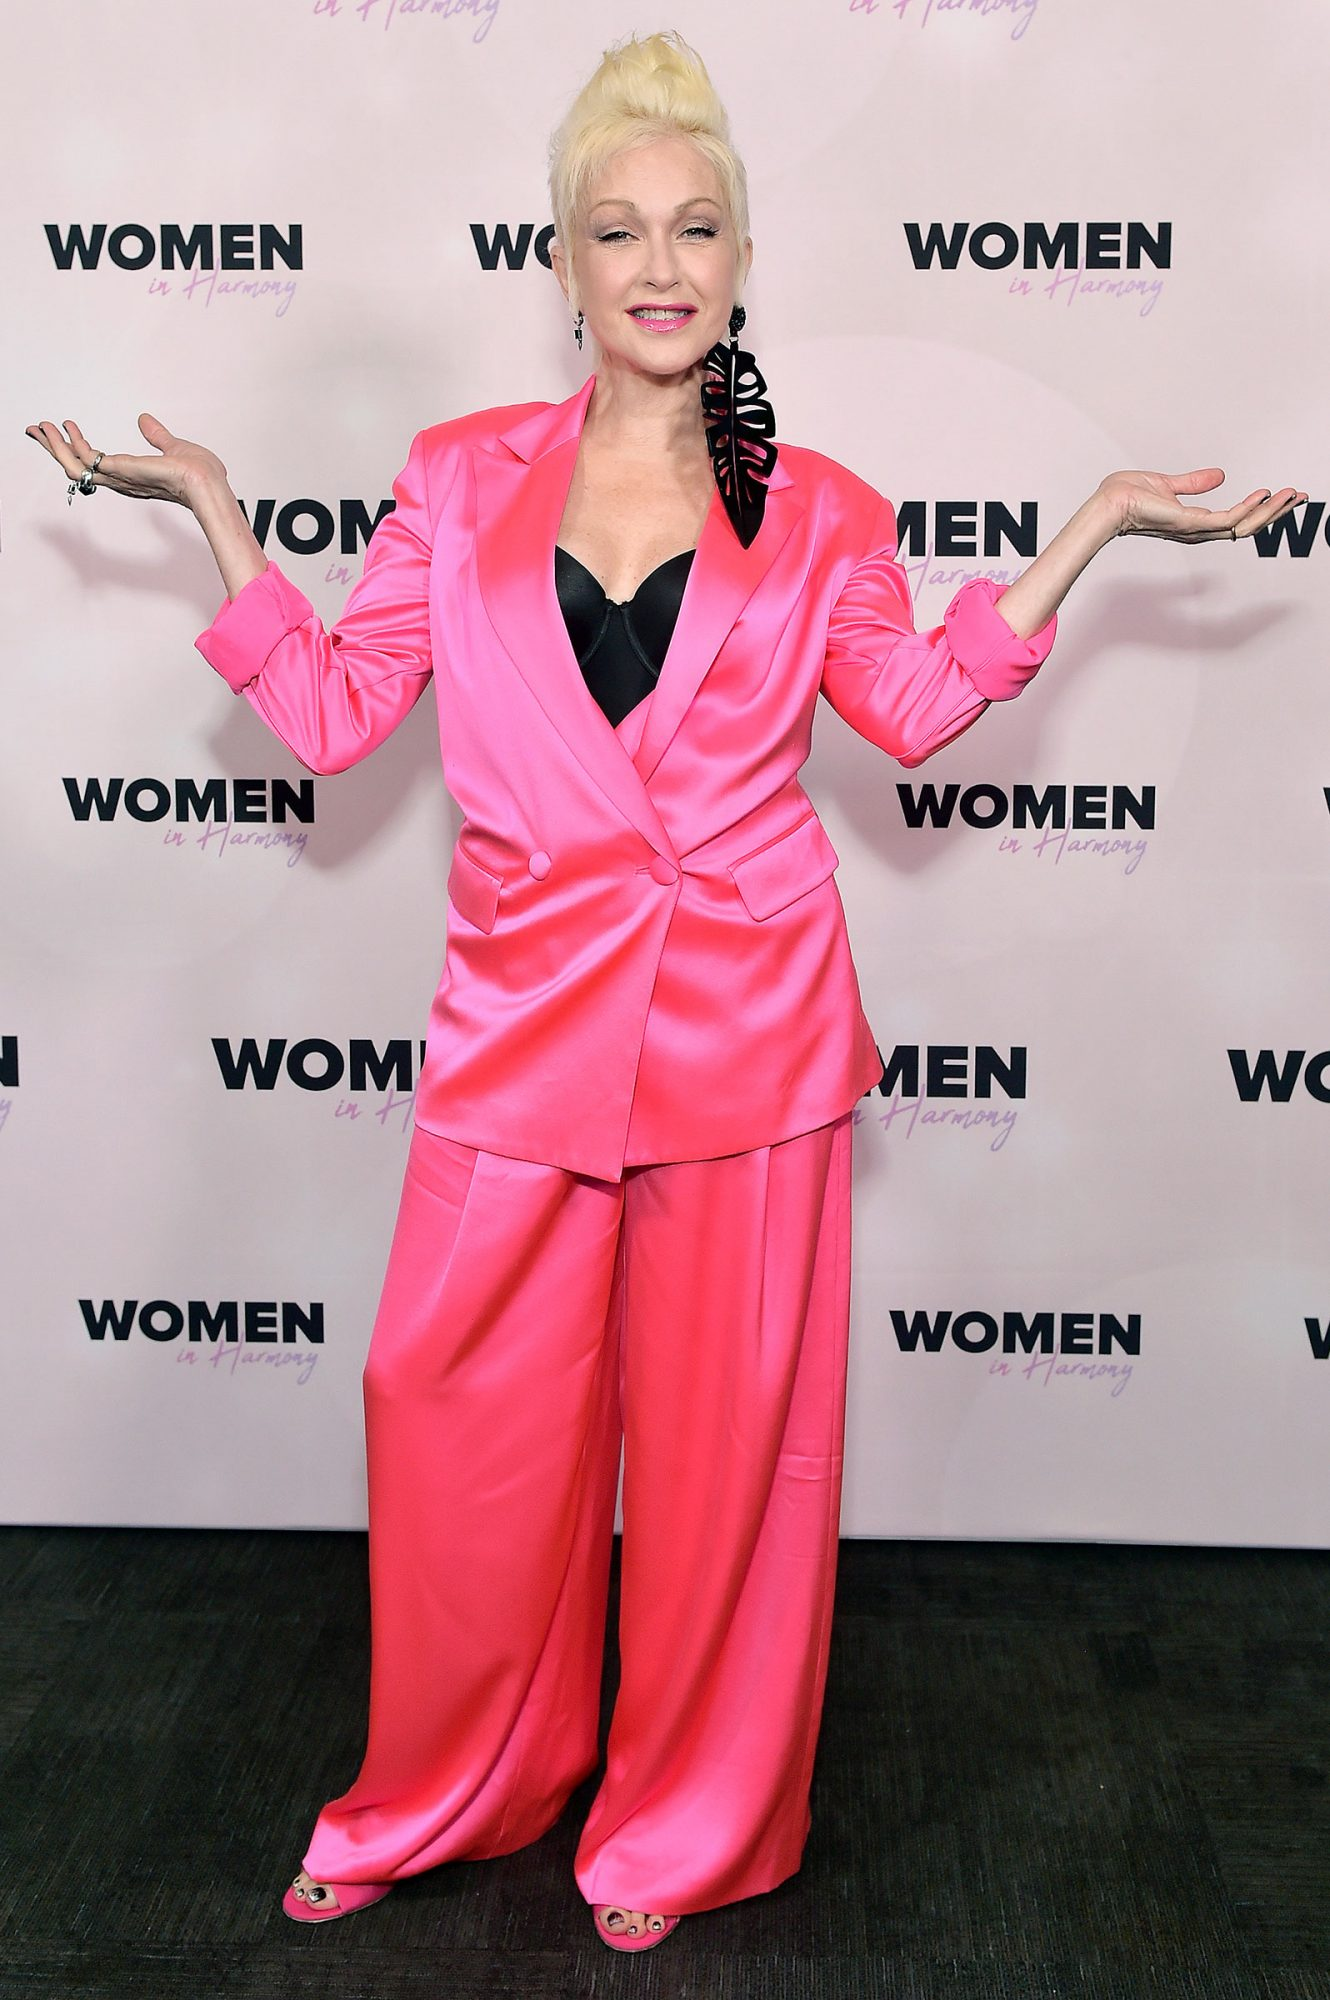 3rd Annual Women in Harmony Pre-Grammy Luncheon with Host Bebe Rexha